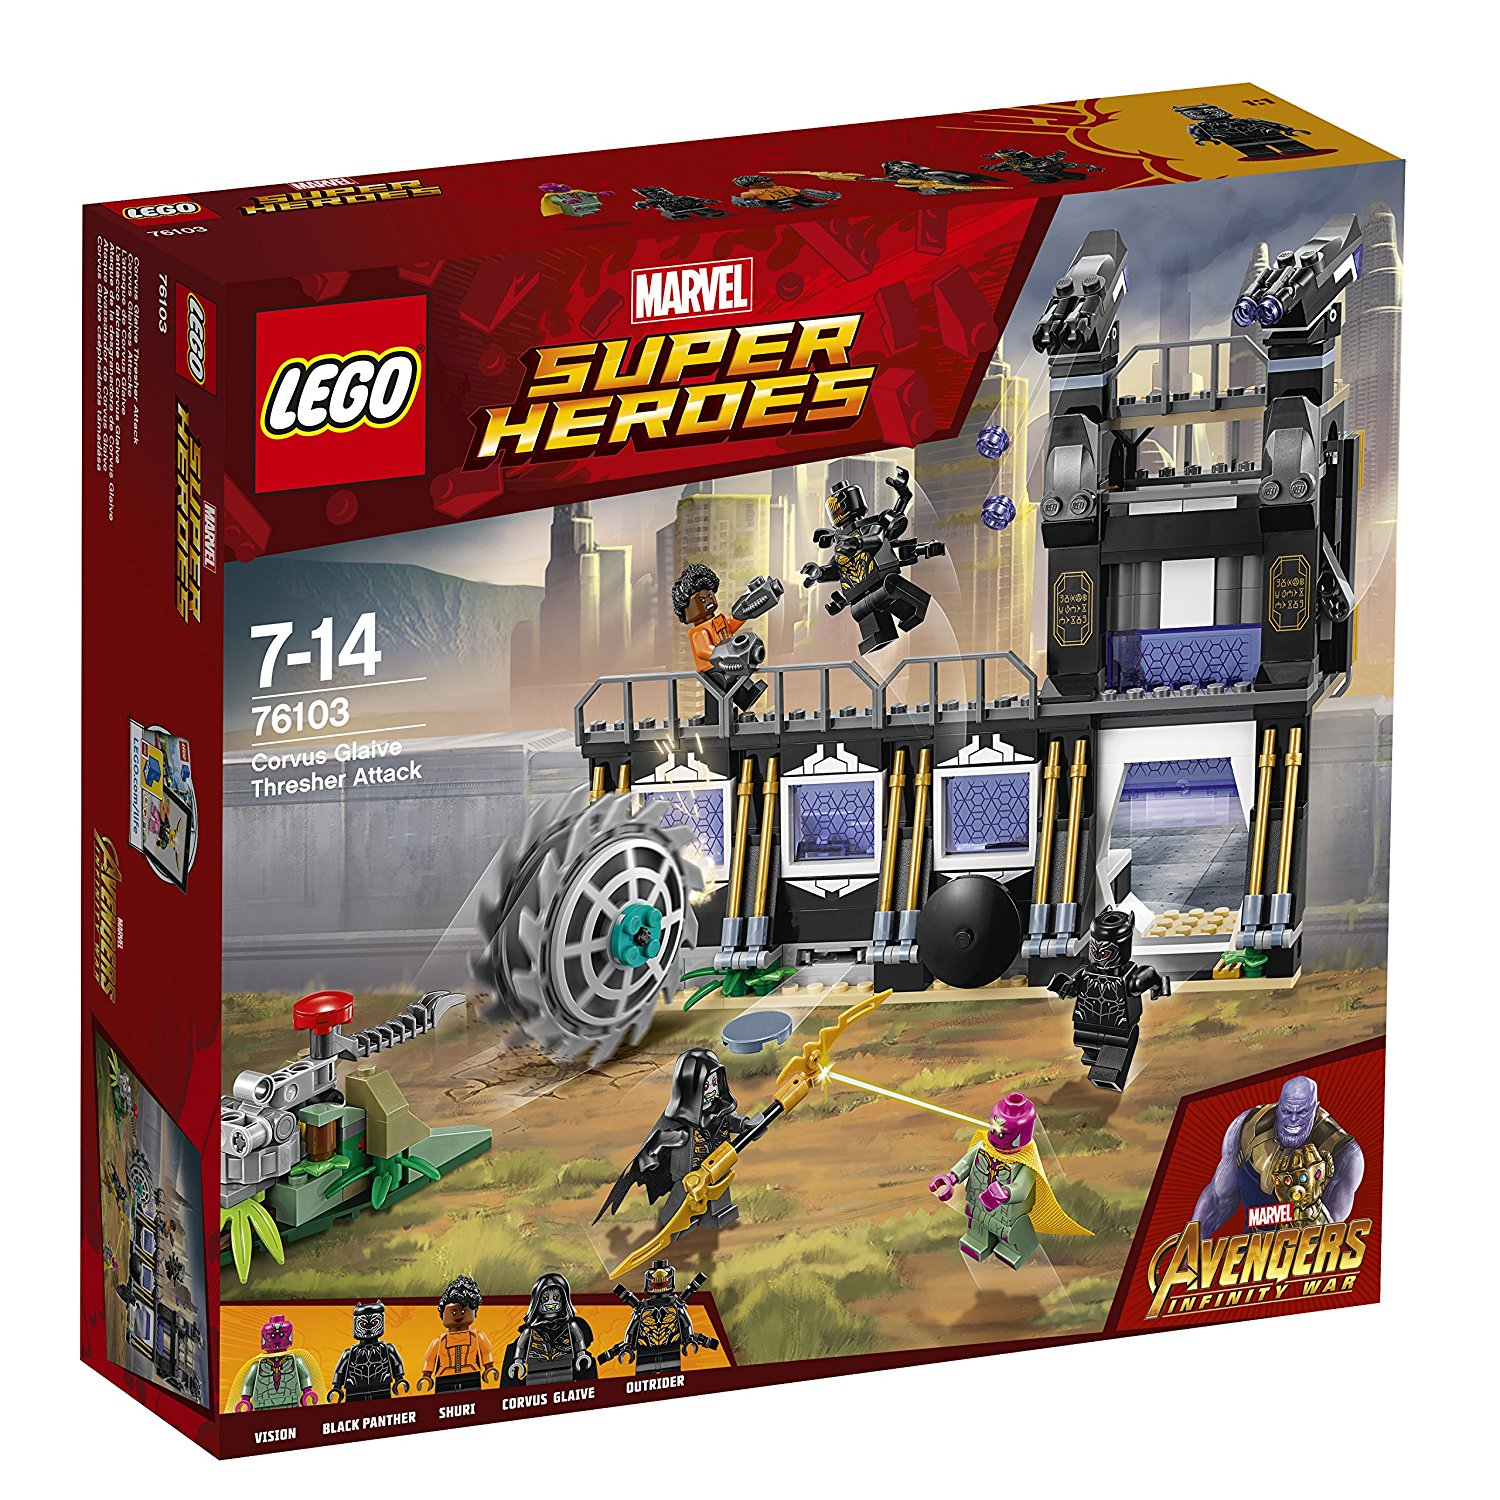 Marvel Avengers Infinity War Lego Sets Out Now